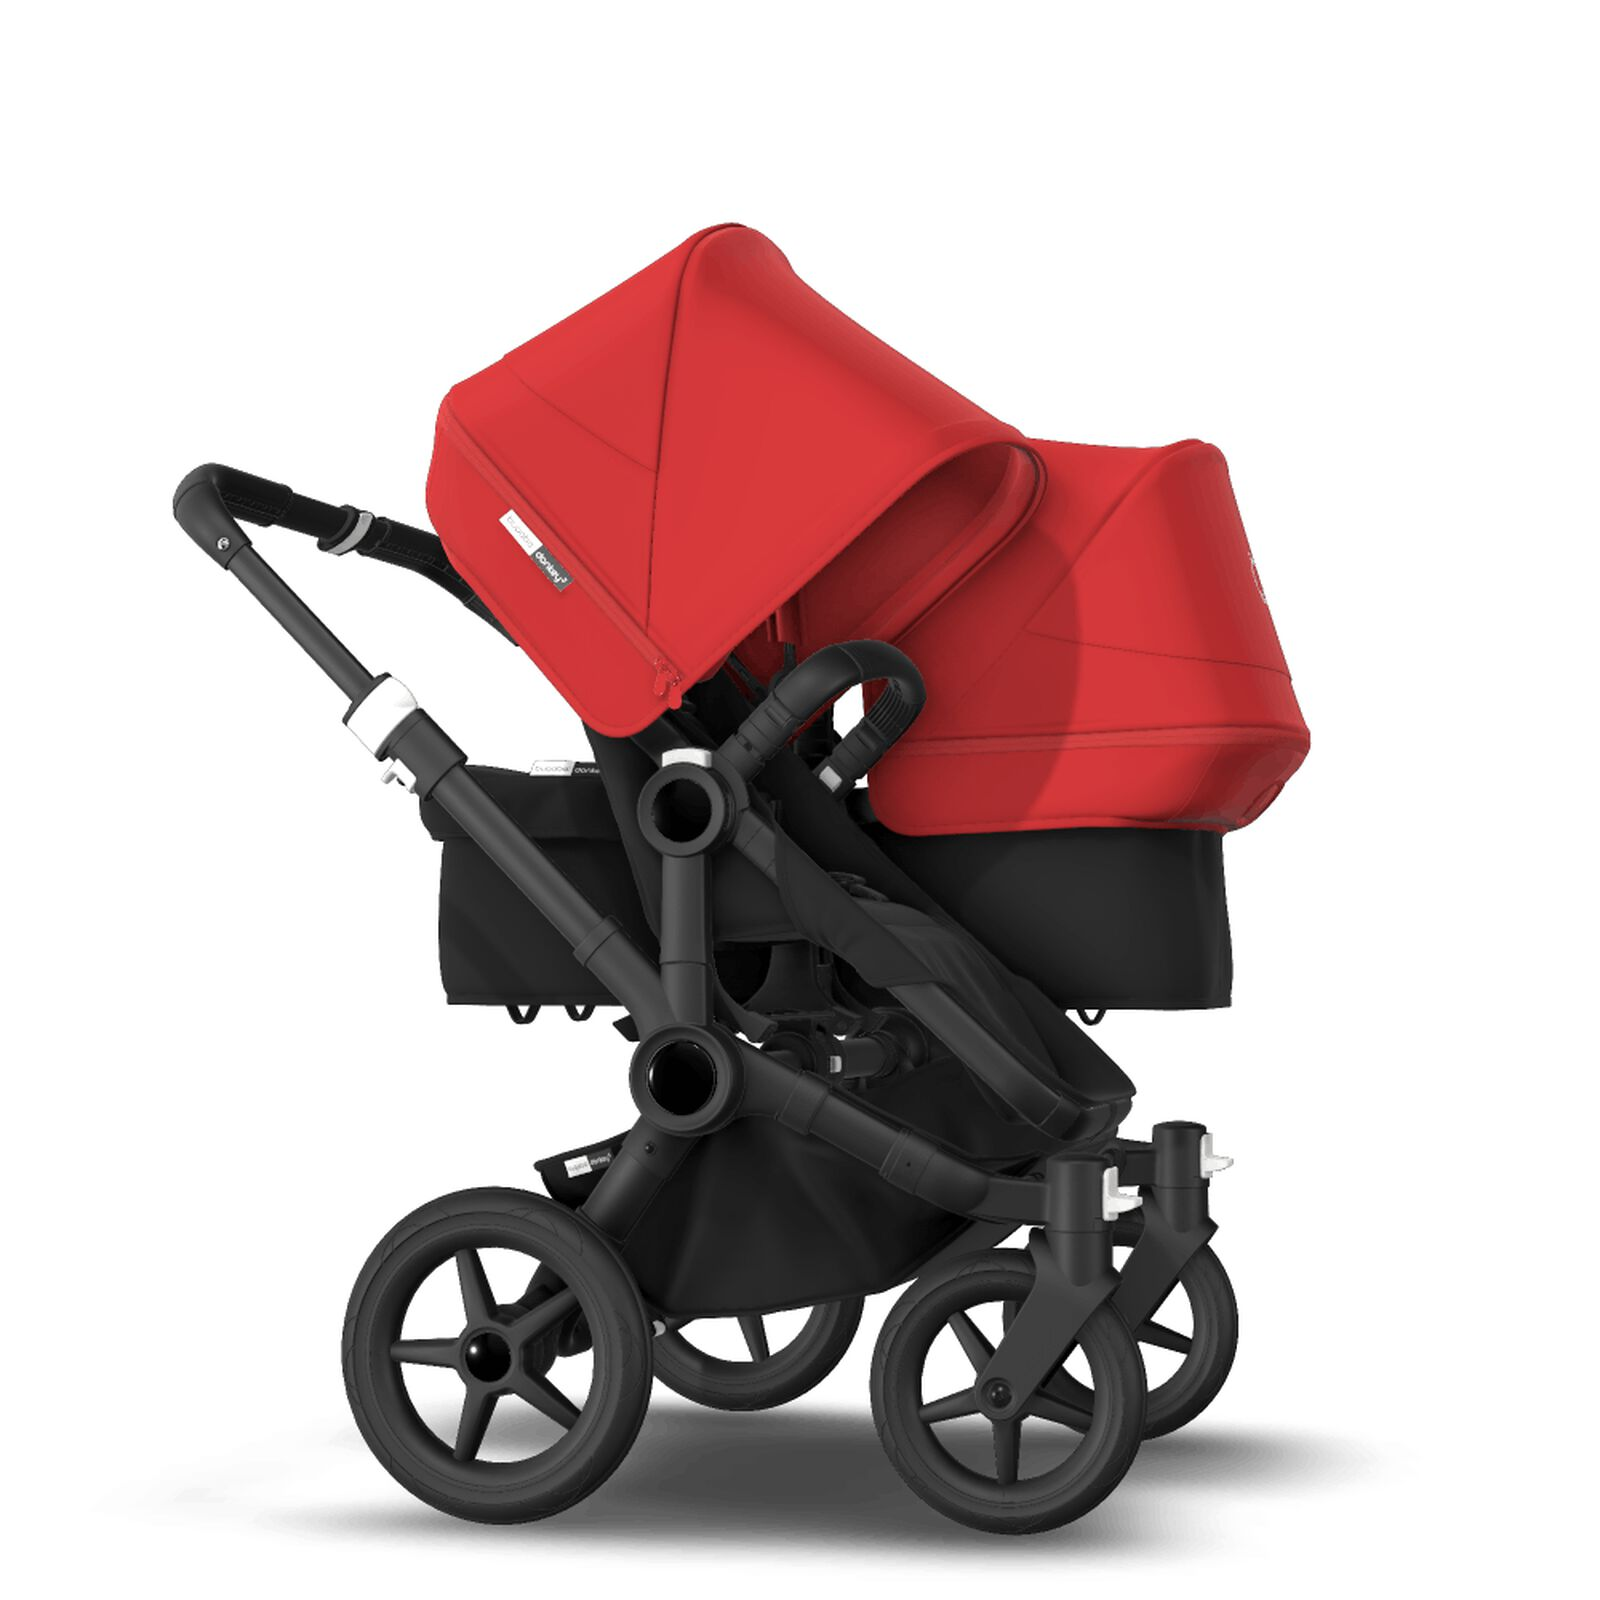 Bugaboo Donkey 3 Duo carrycot and seat pushchair